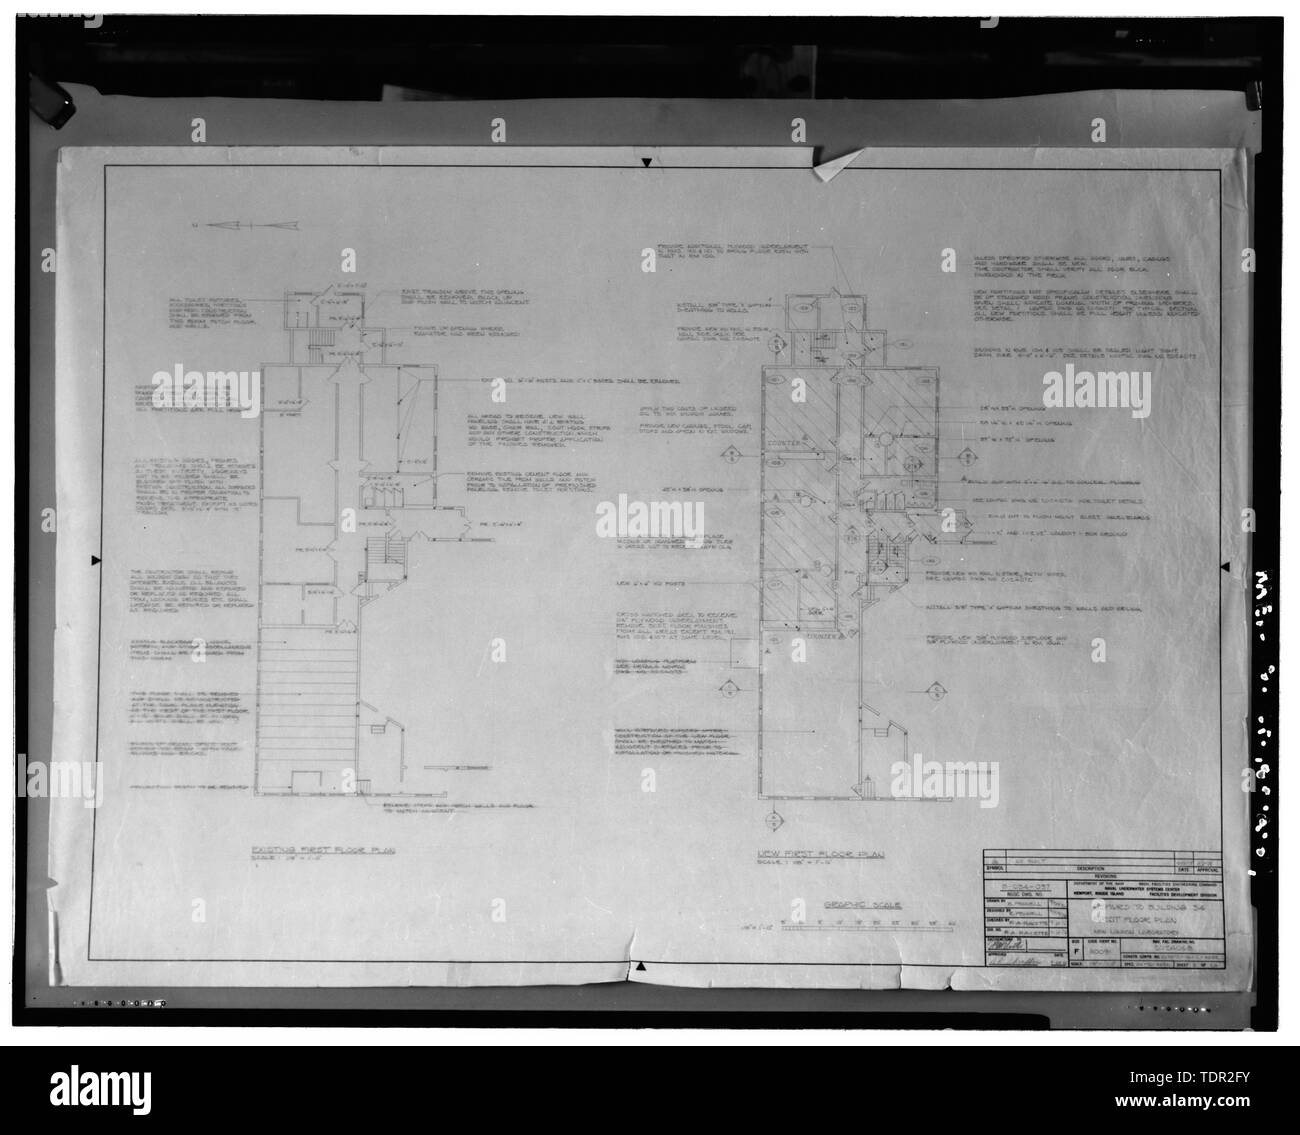 Photograph of plans for repairs to Building 34, first floor plan, 1976-1978, drawn by Naval Facilities Engineering Command. Drawing on file at Caretaker Site Office, Naval Undersea Warfare Center, New London. Copyright-free. - Naval Undersea Warfare Center, Bowditch Hall, 600 feet east of Smith Street and 350 feet south of Columbia Cove, West bank of Thames River, New London, New London County, CT - Stock Image